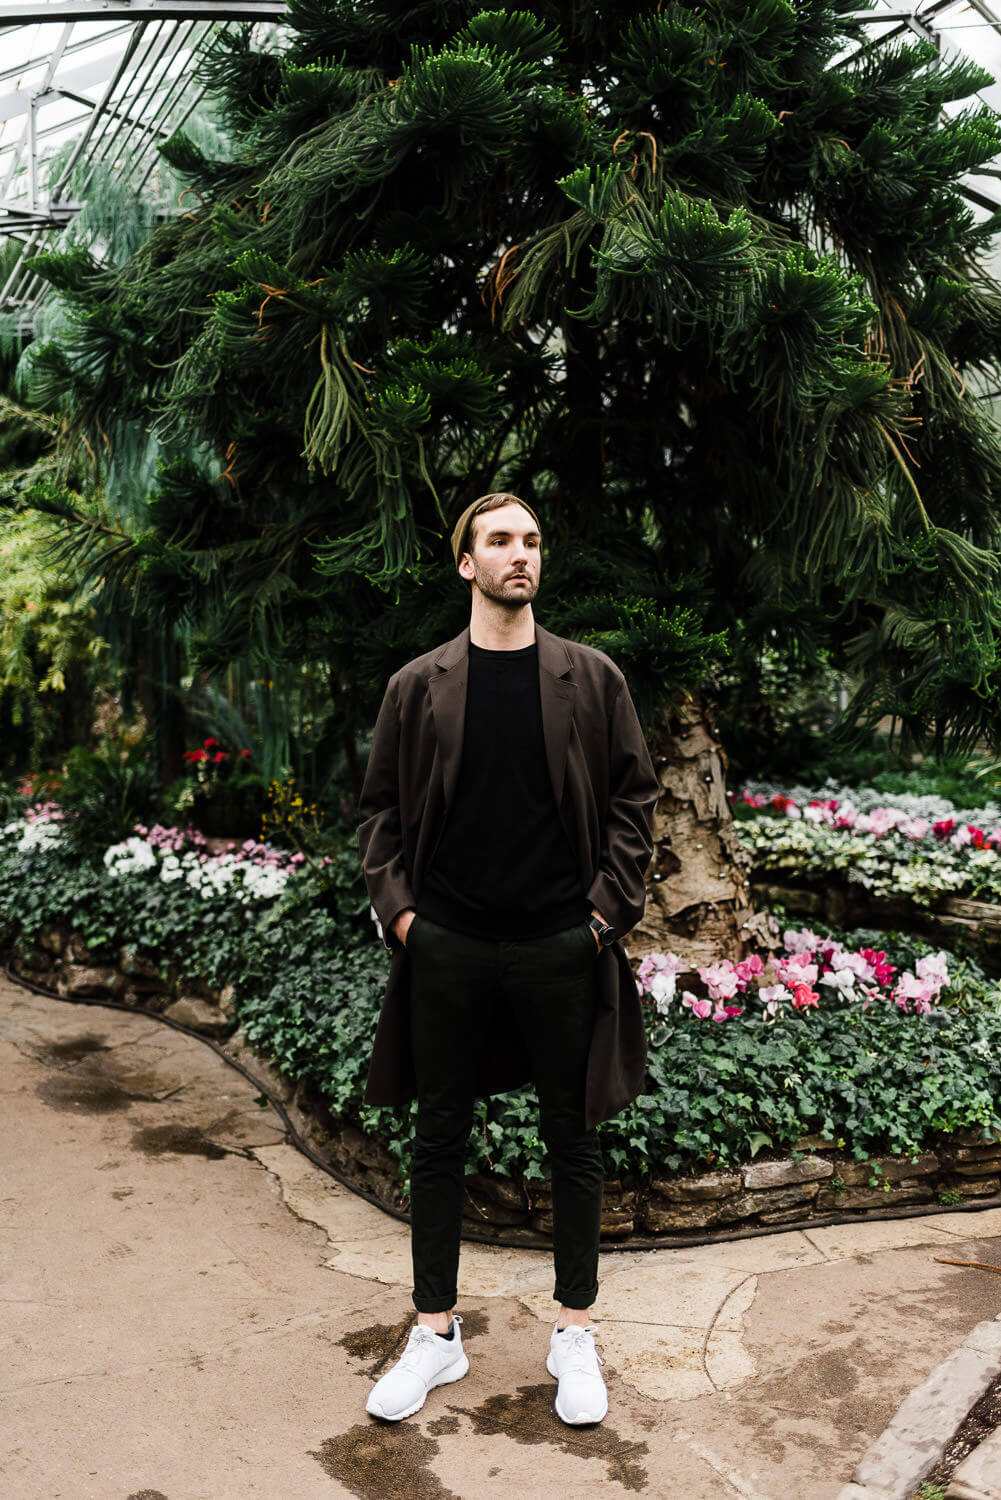 Very tall young man poses for portrait at Allan Gardens in Toronto